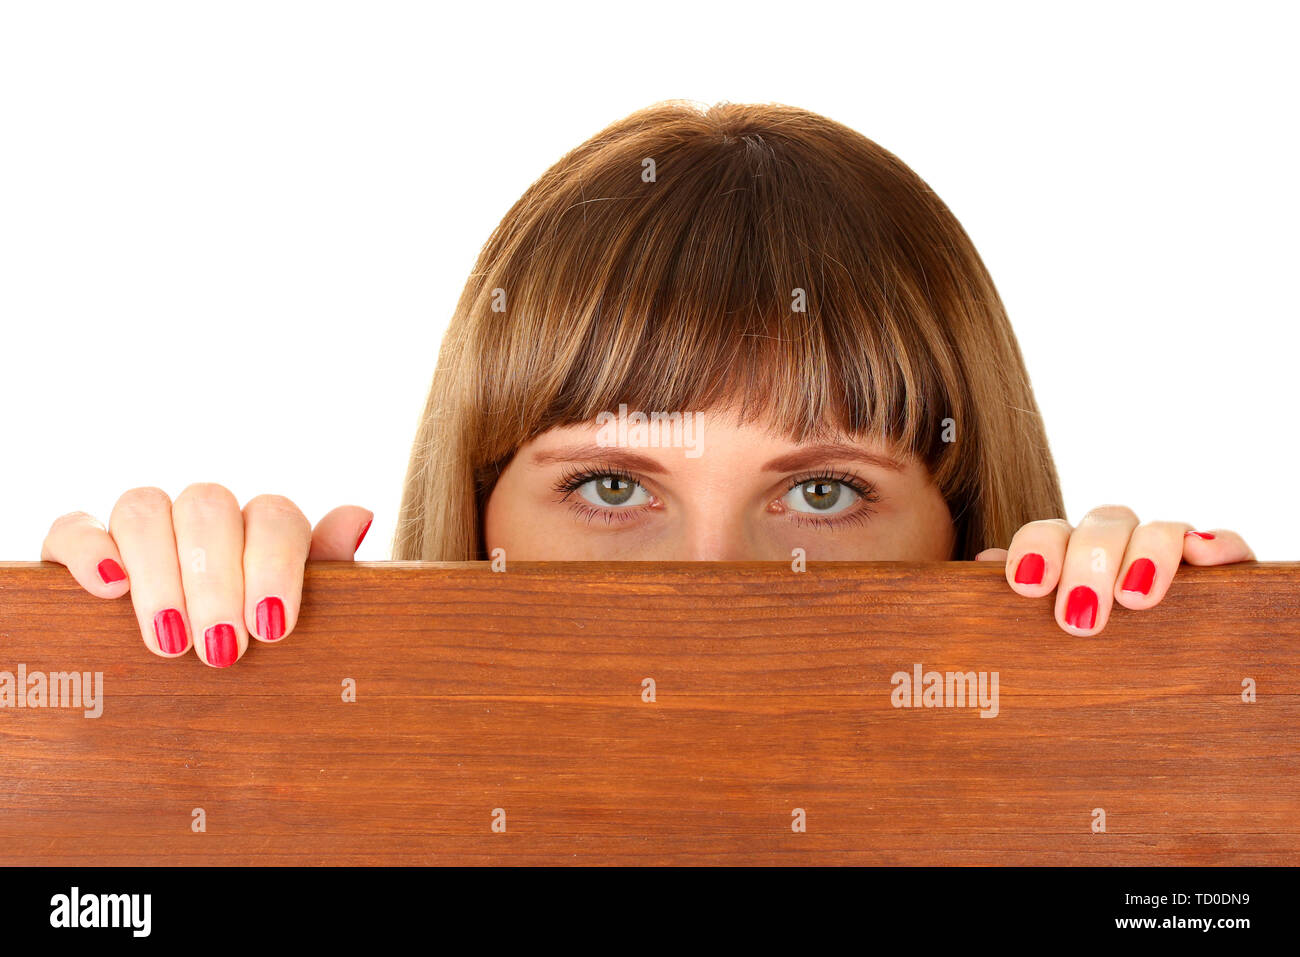 Woman peeking from wooden desk, isolated on white - Stock Image